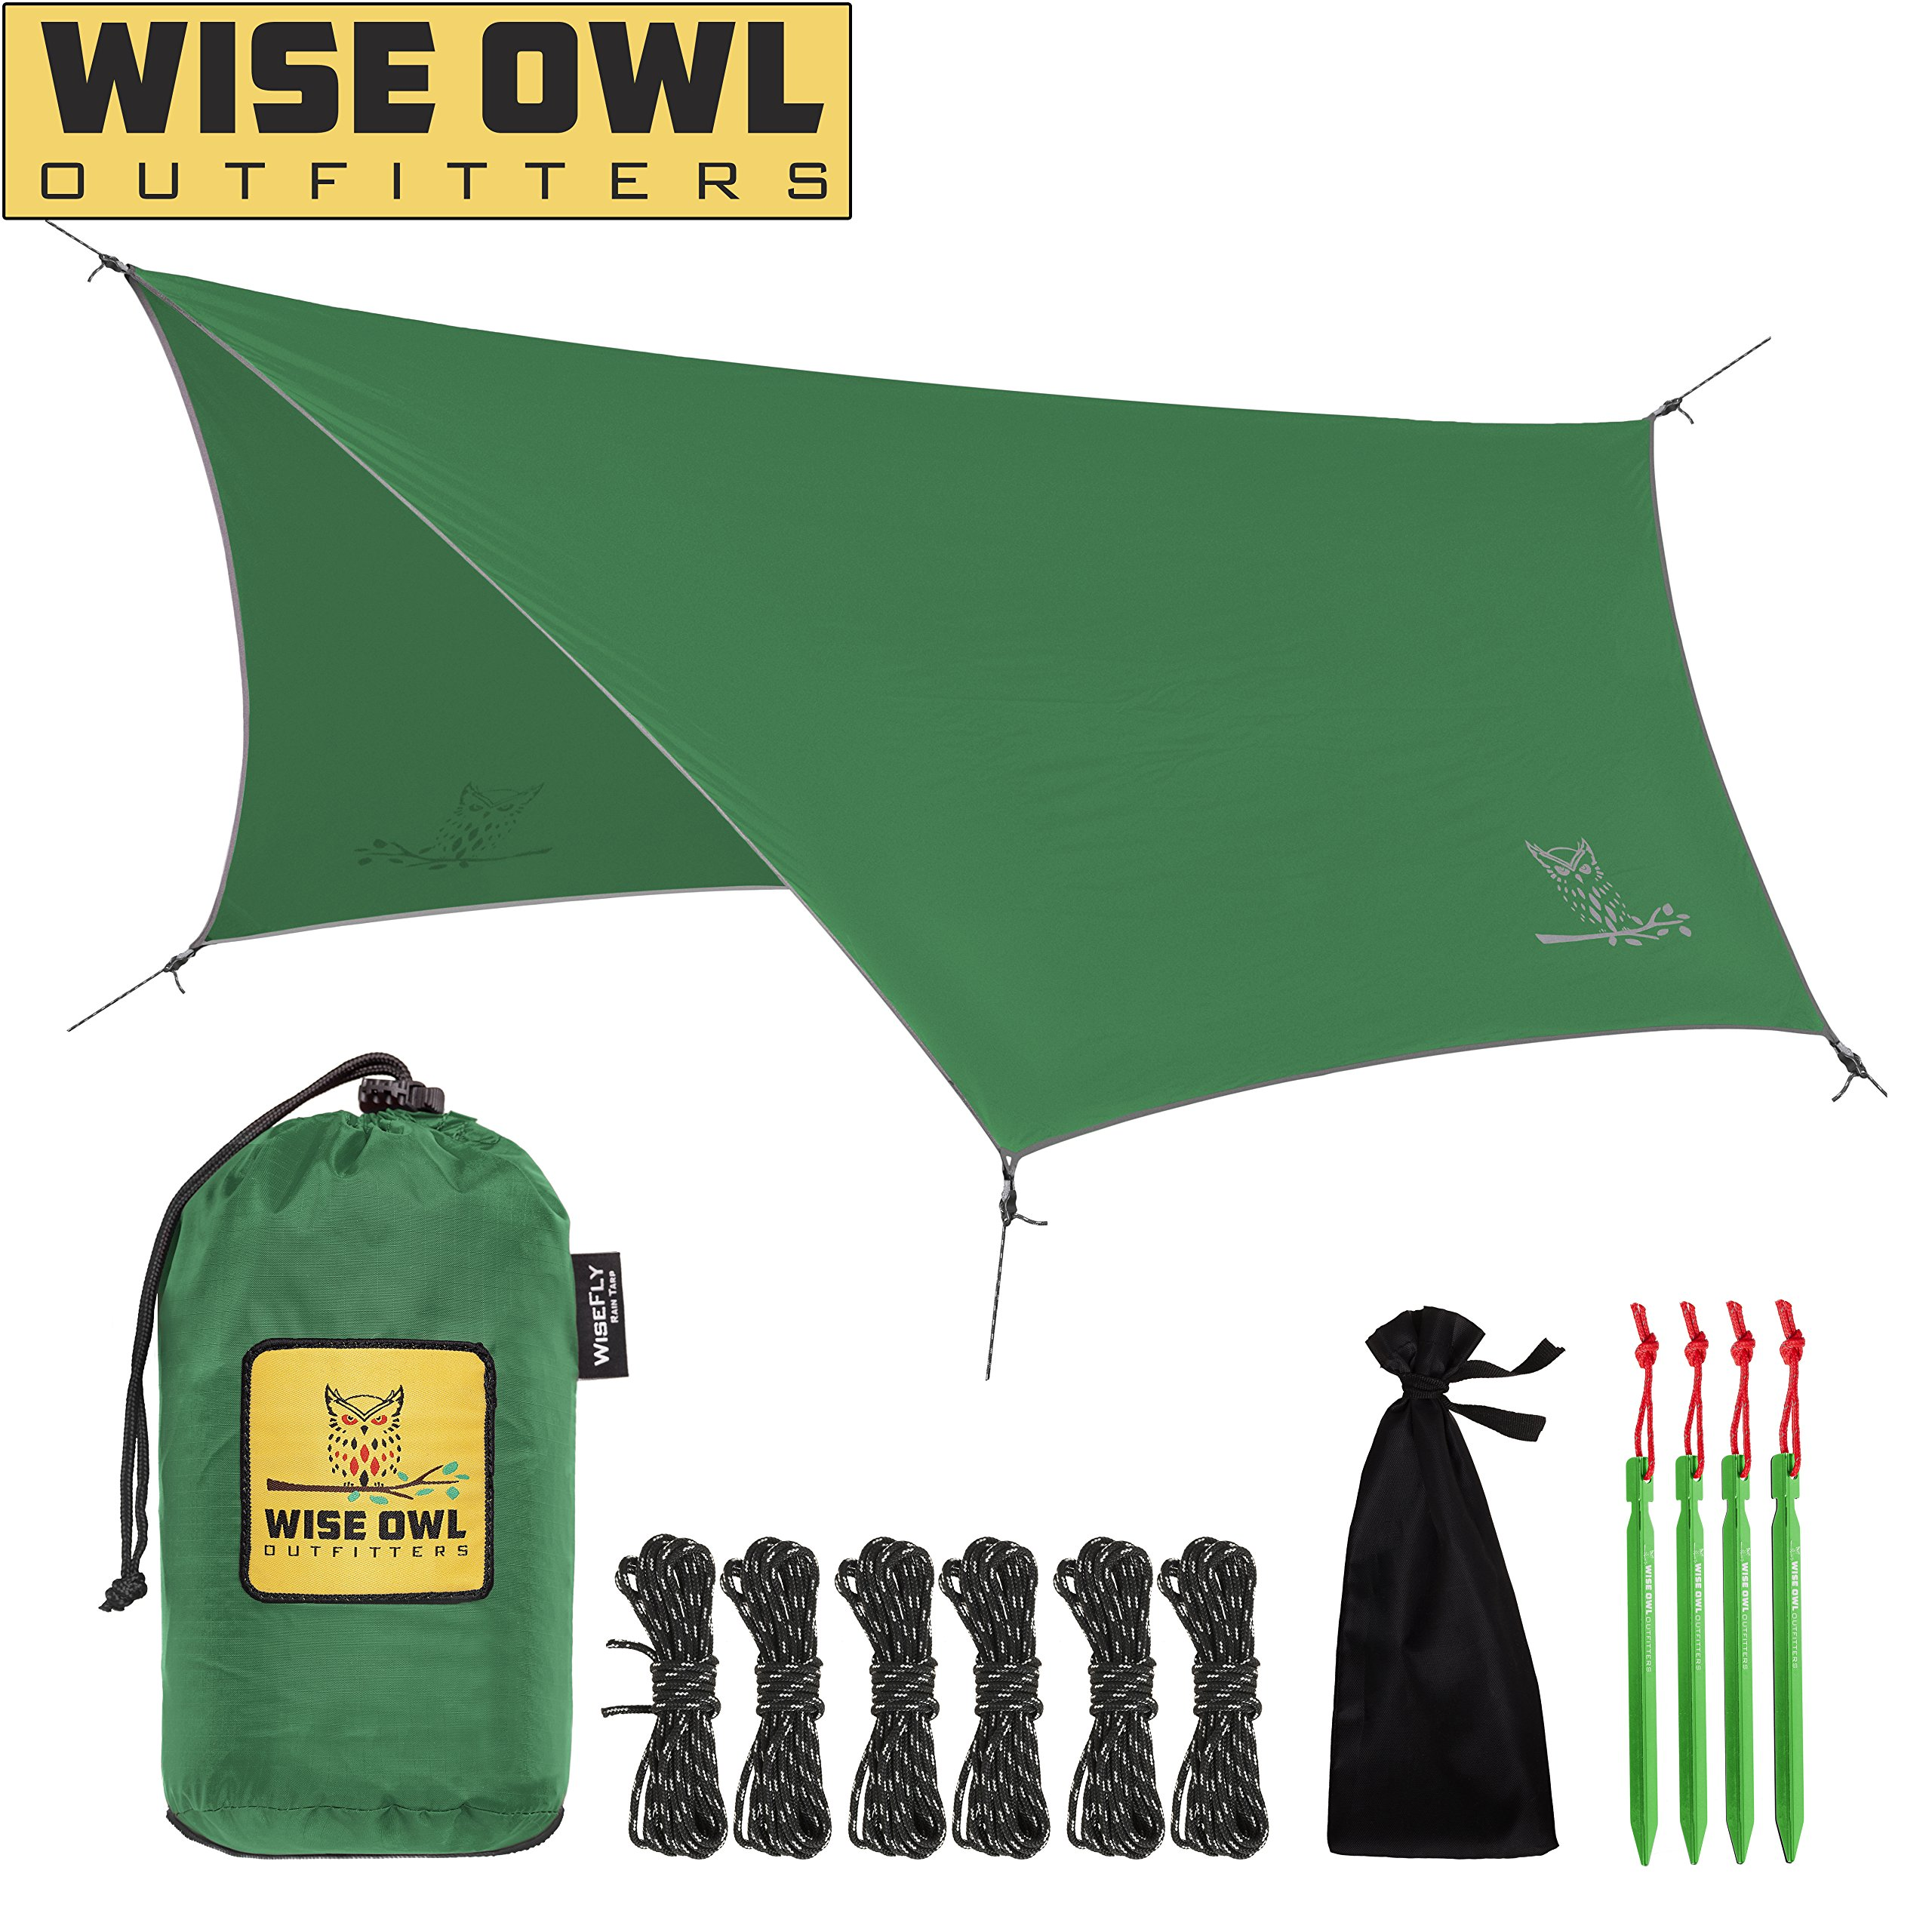 Wise Owl Outfitters Rain Fly Tarp - The WiseFly Premium 11 x 9 ft Waterproof Camping Shelter Canopy - Lightweight Easy Setup for Hammock or Tent Camp Gear - Green by Wise Owl Outfitters